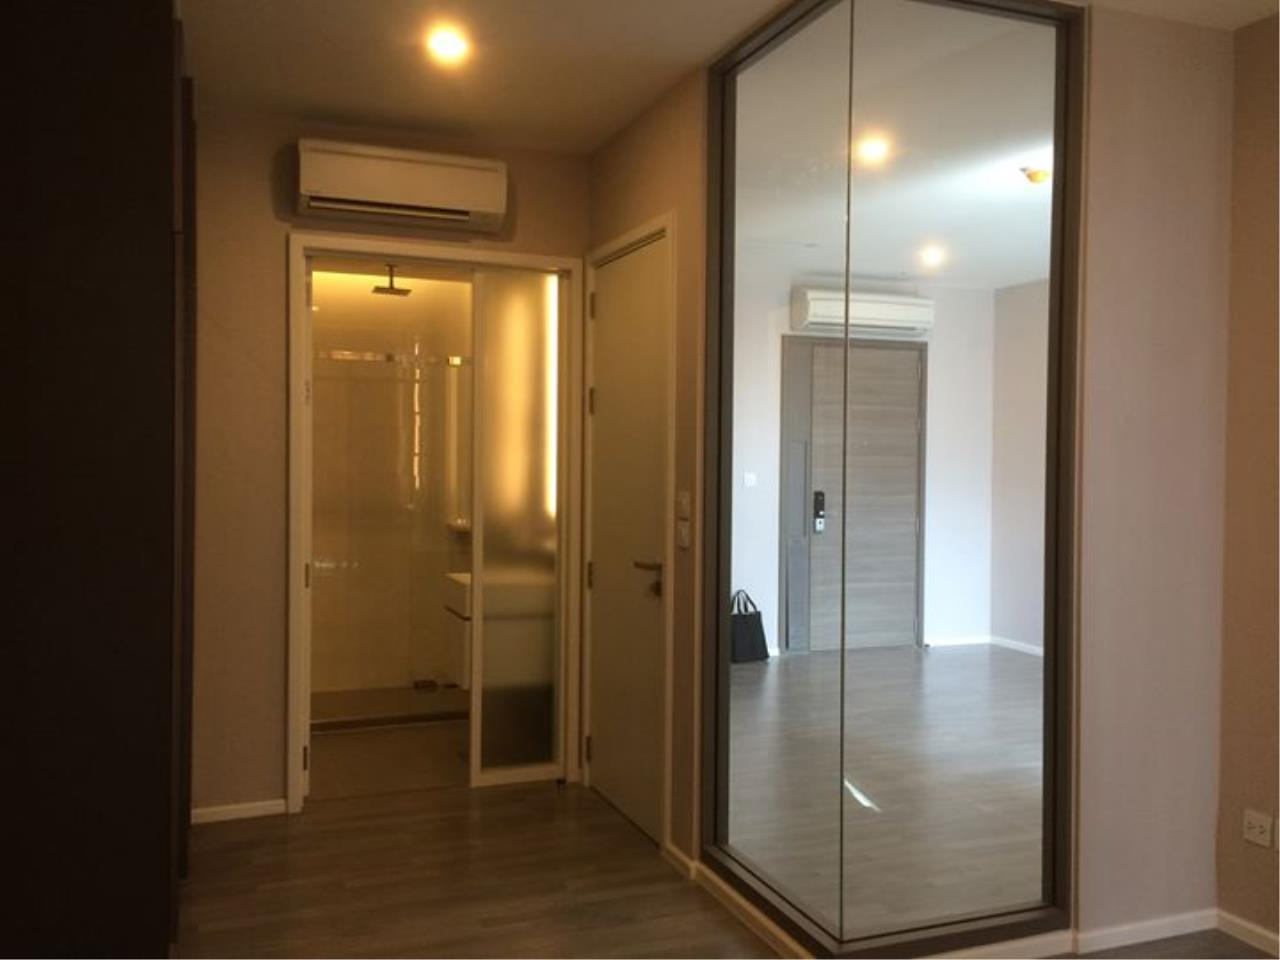 Century21 Skylux Agency's The Room Sukhumvit 69 / Condo For Sale / 1 Bedroom / 44.91 SQM / BTS Phra Khanong / Bangkok 5